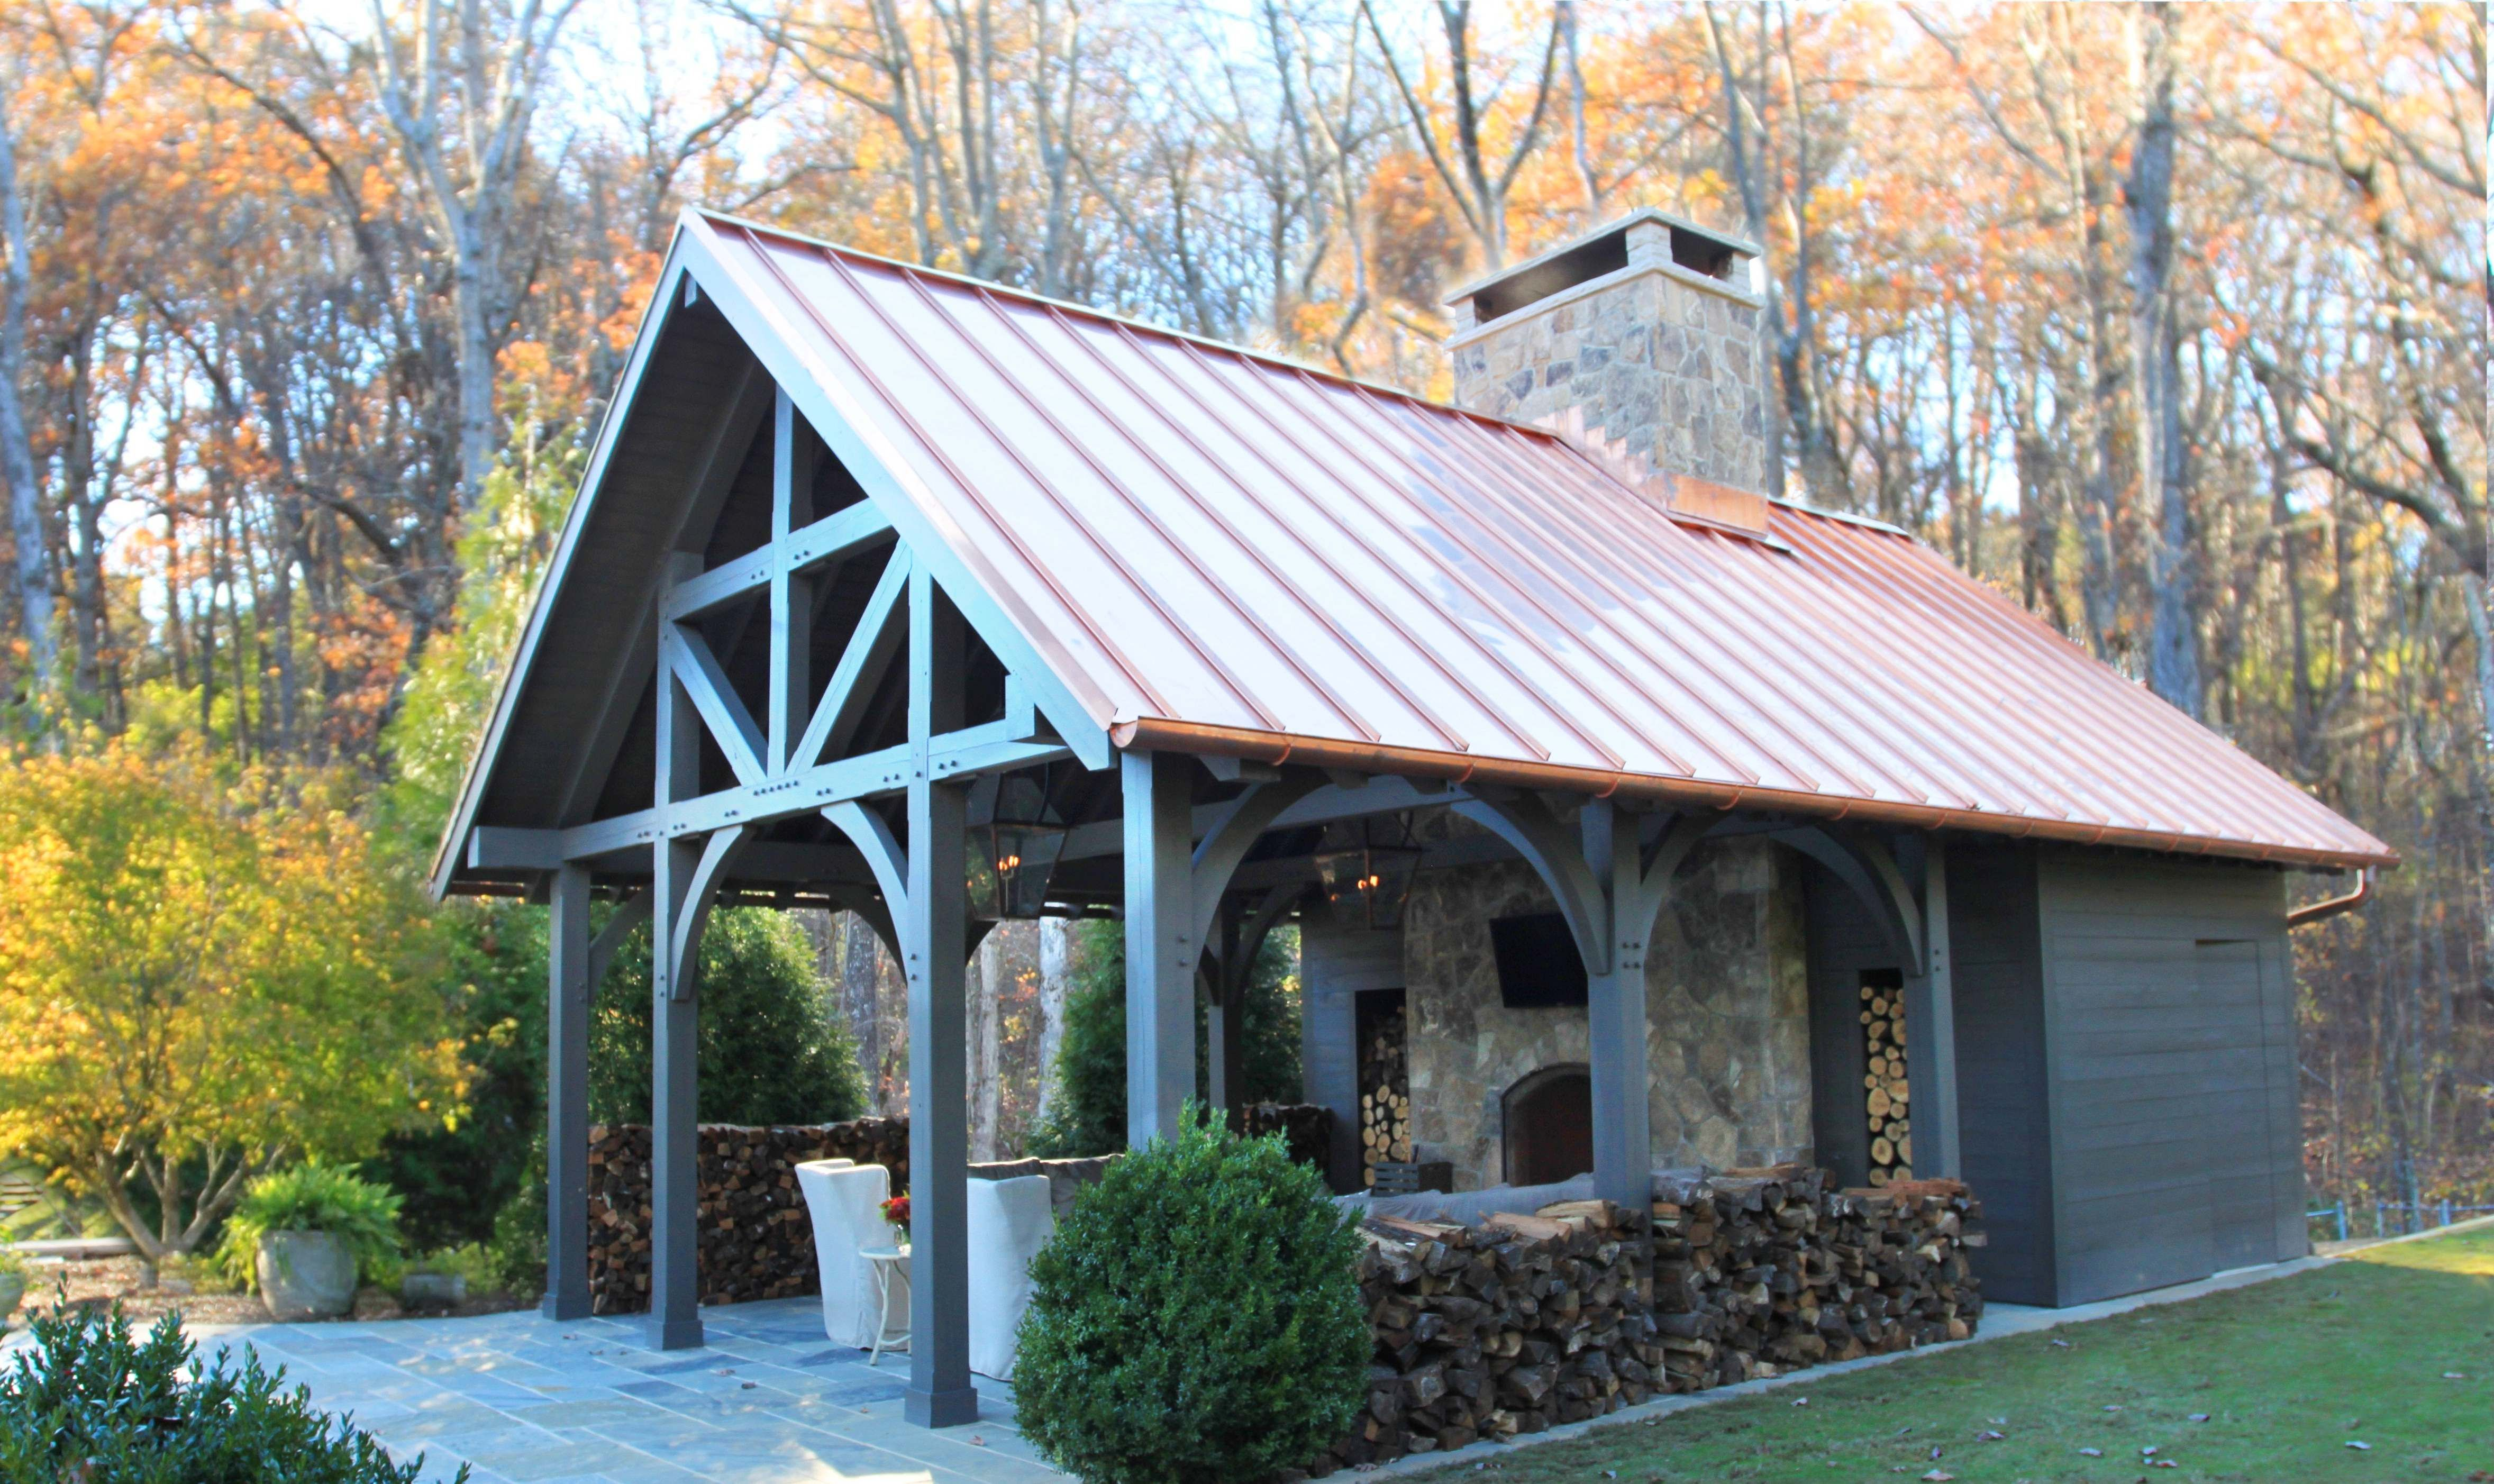 Timber frame pavilion copper roof | House Ideas | Pinterest